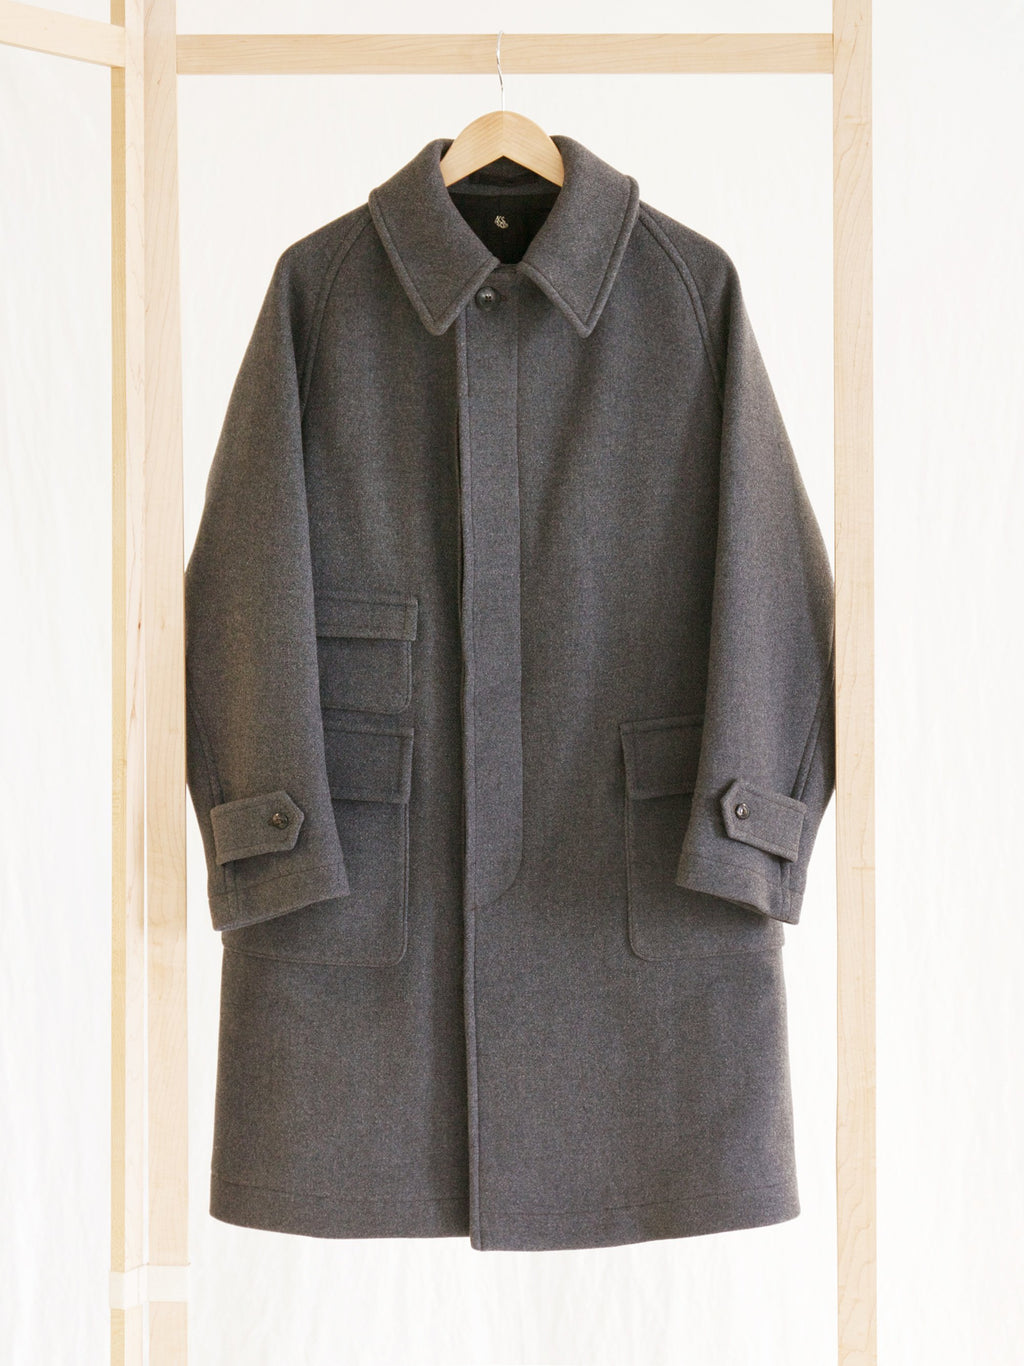 Namu Shop - Kaptain Sunshine Traveller Coat - Gray